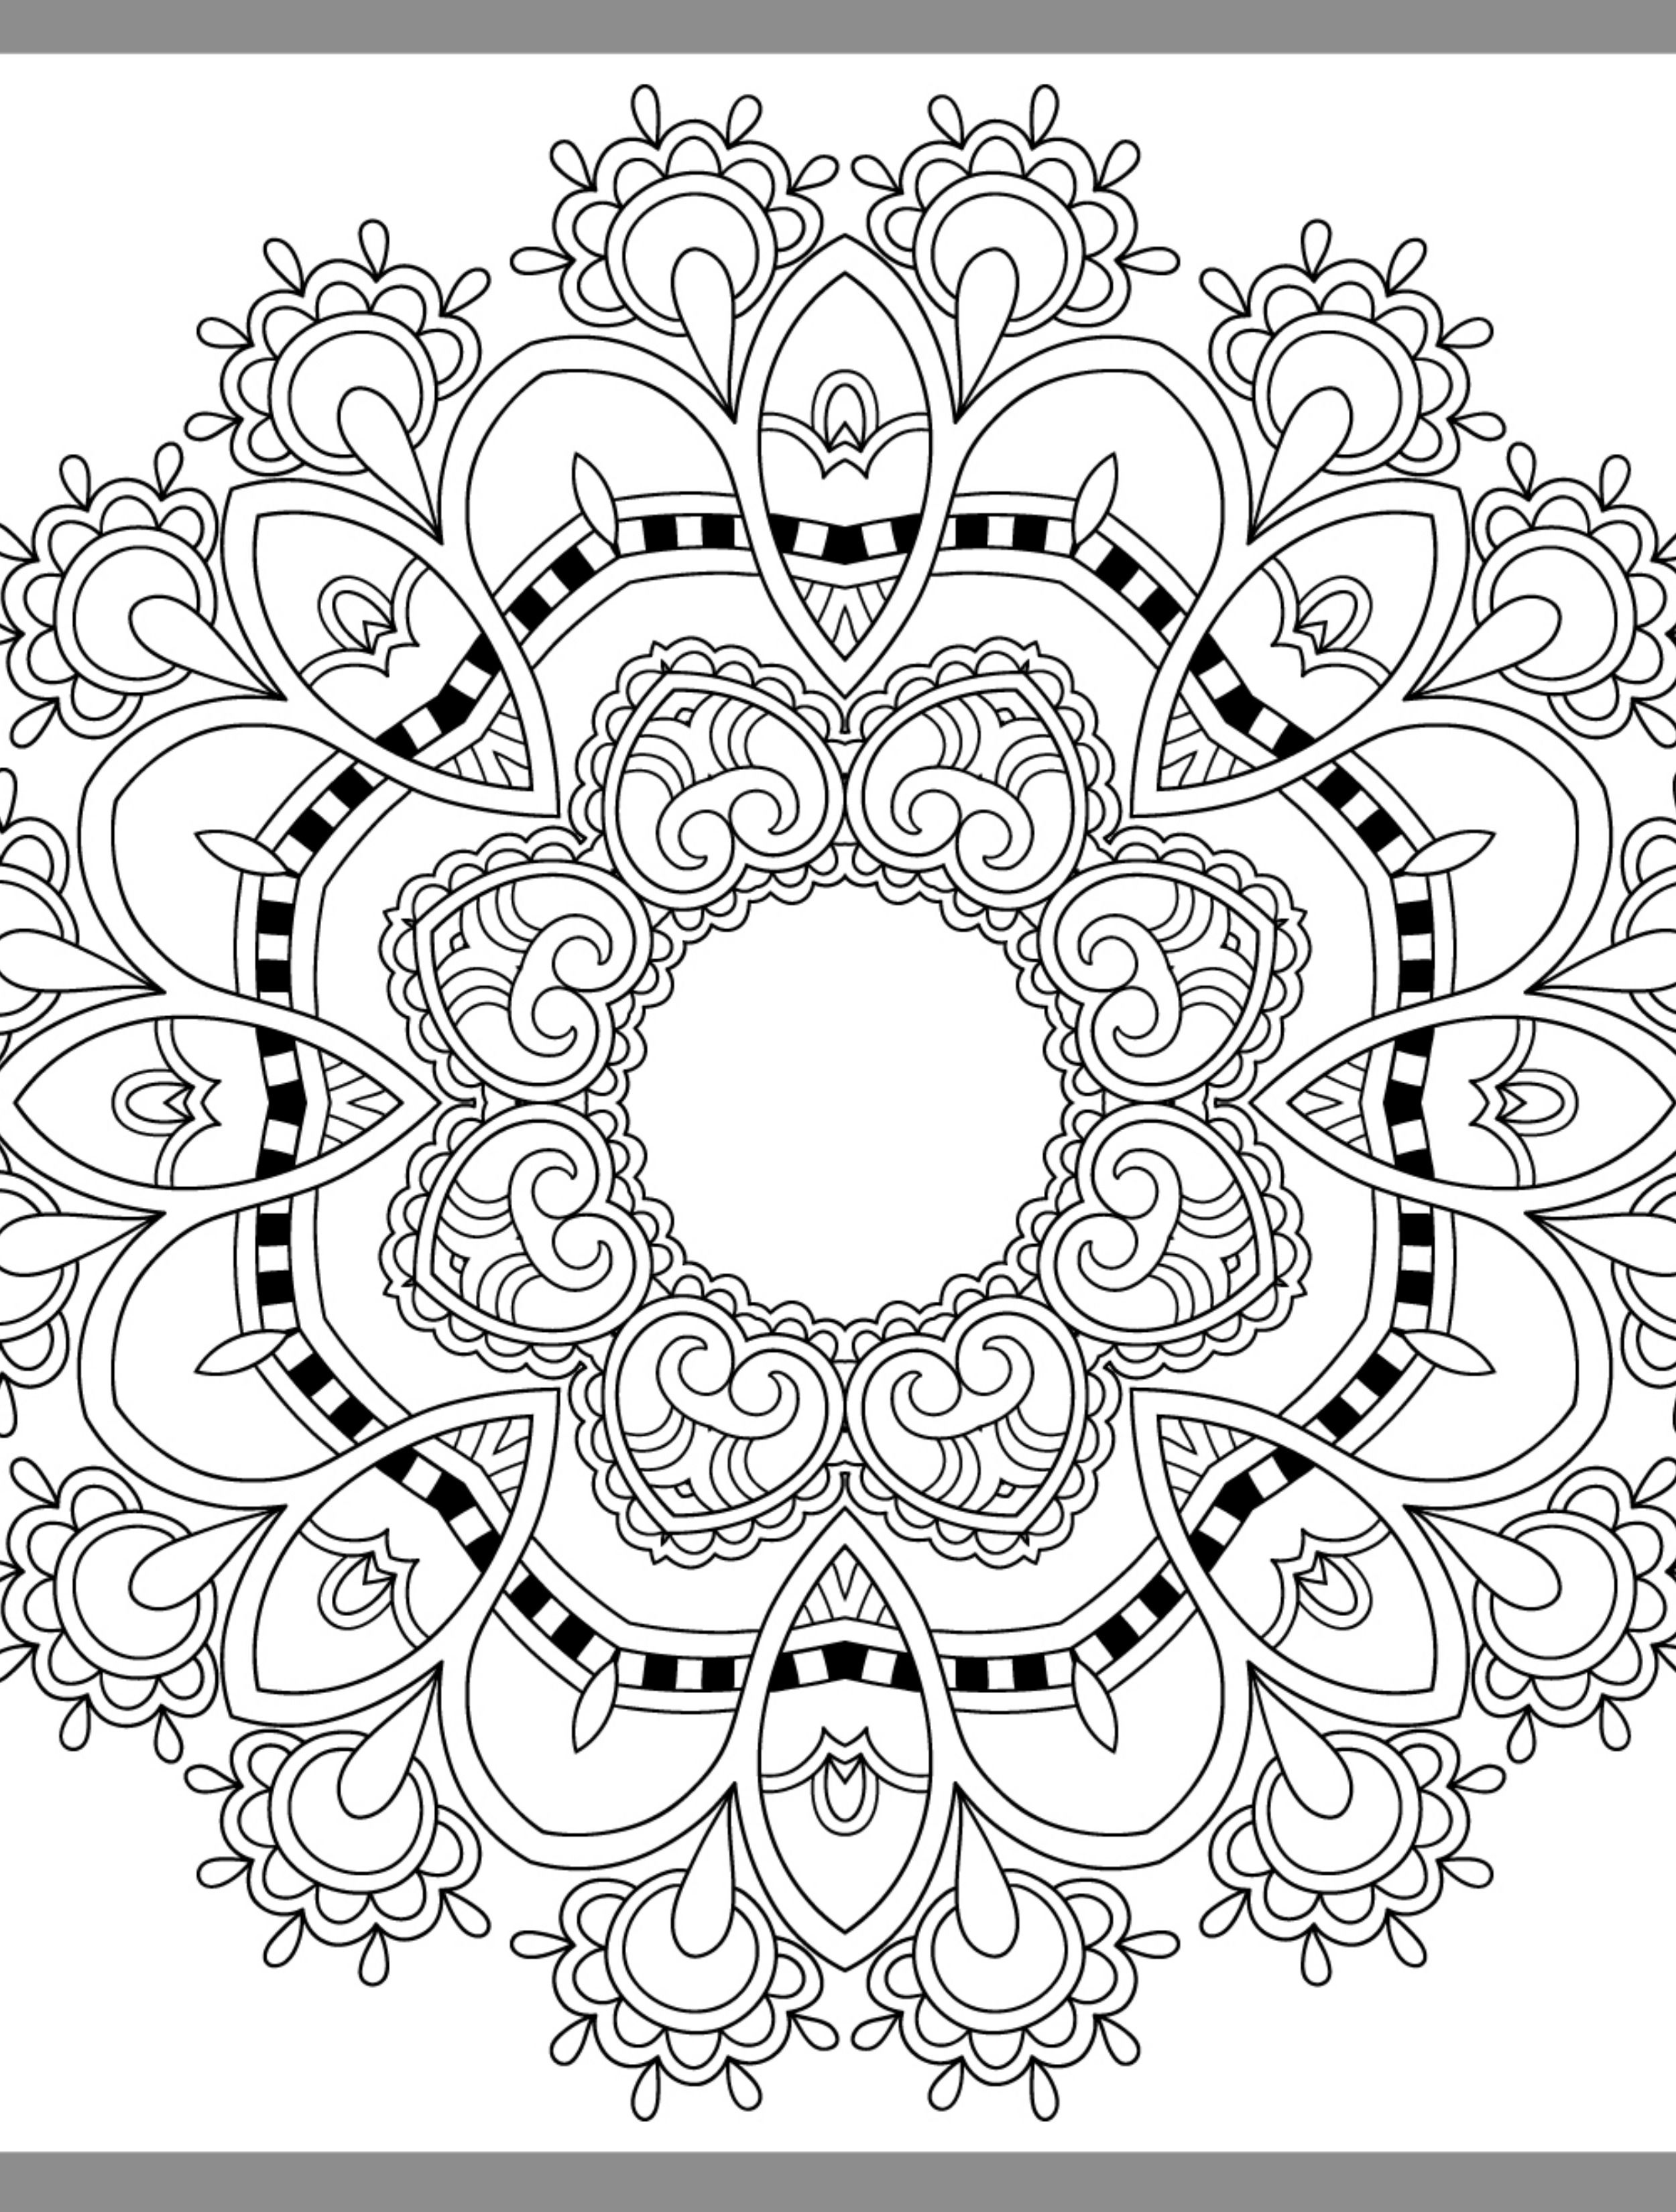 24 More Free Printable Adult Coloring Pages - Page 13 of 25 ...